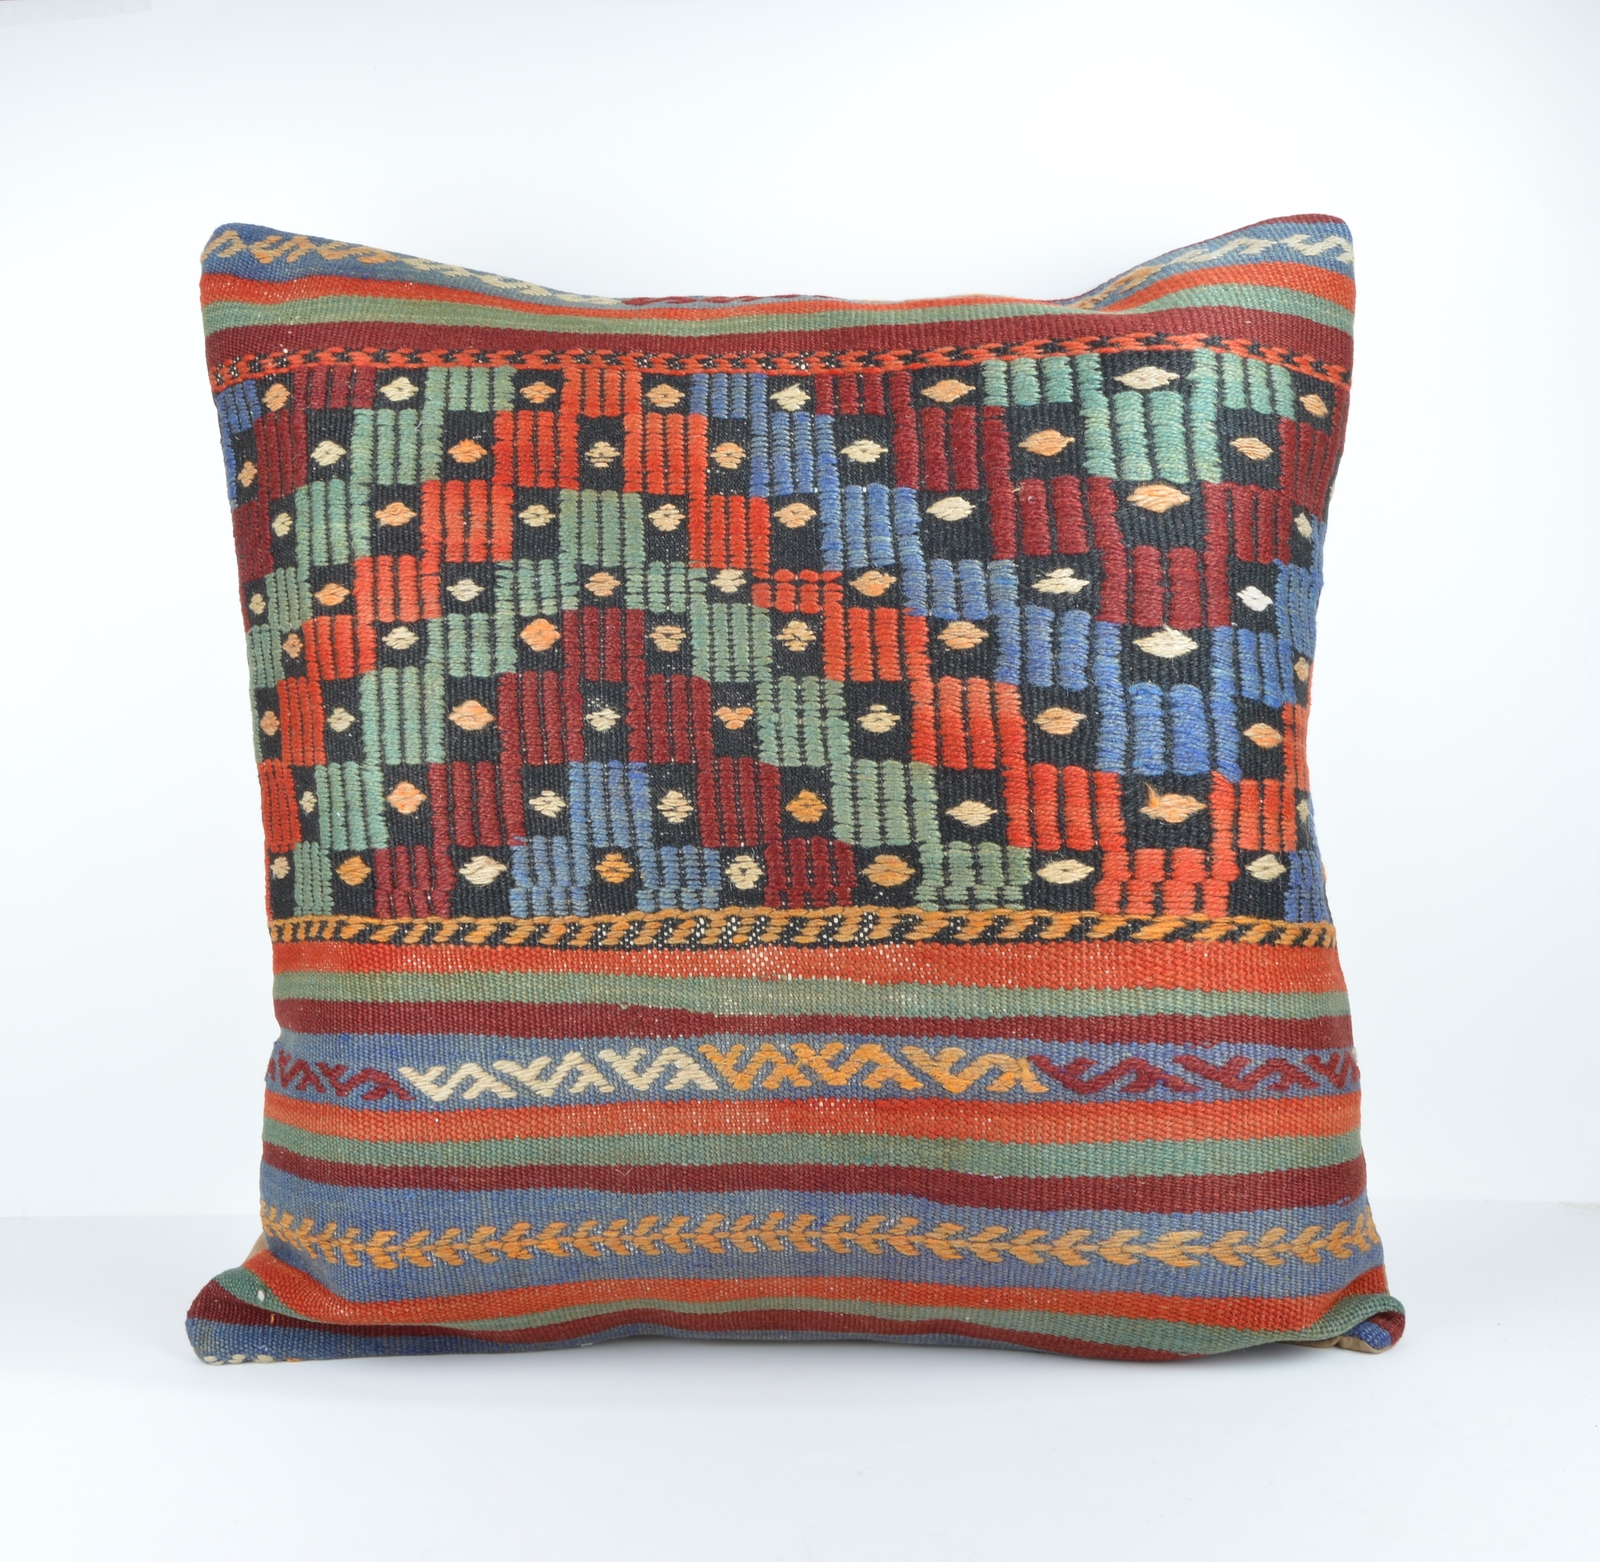 Large Throw Pillow Cases : 24x24 large kilim pillow big pillow decorative pillow cover large cushion case - Pillowcases